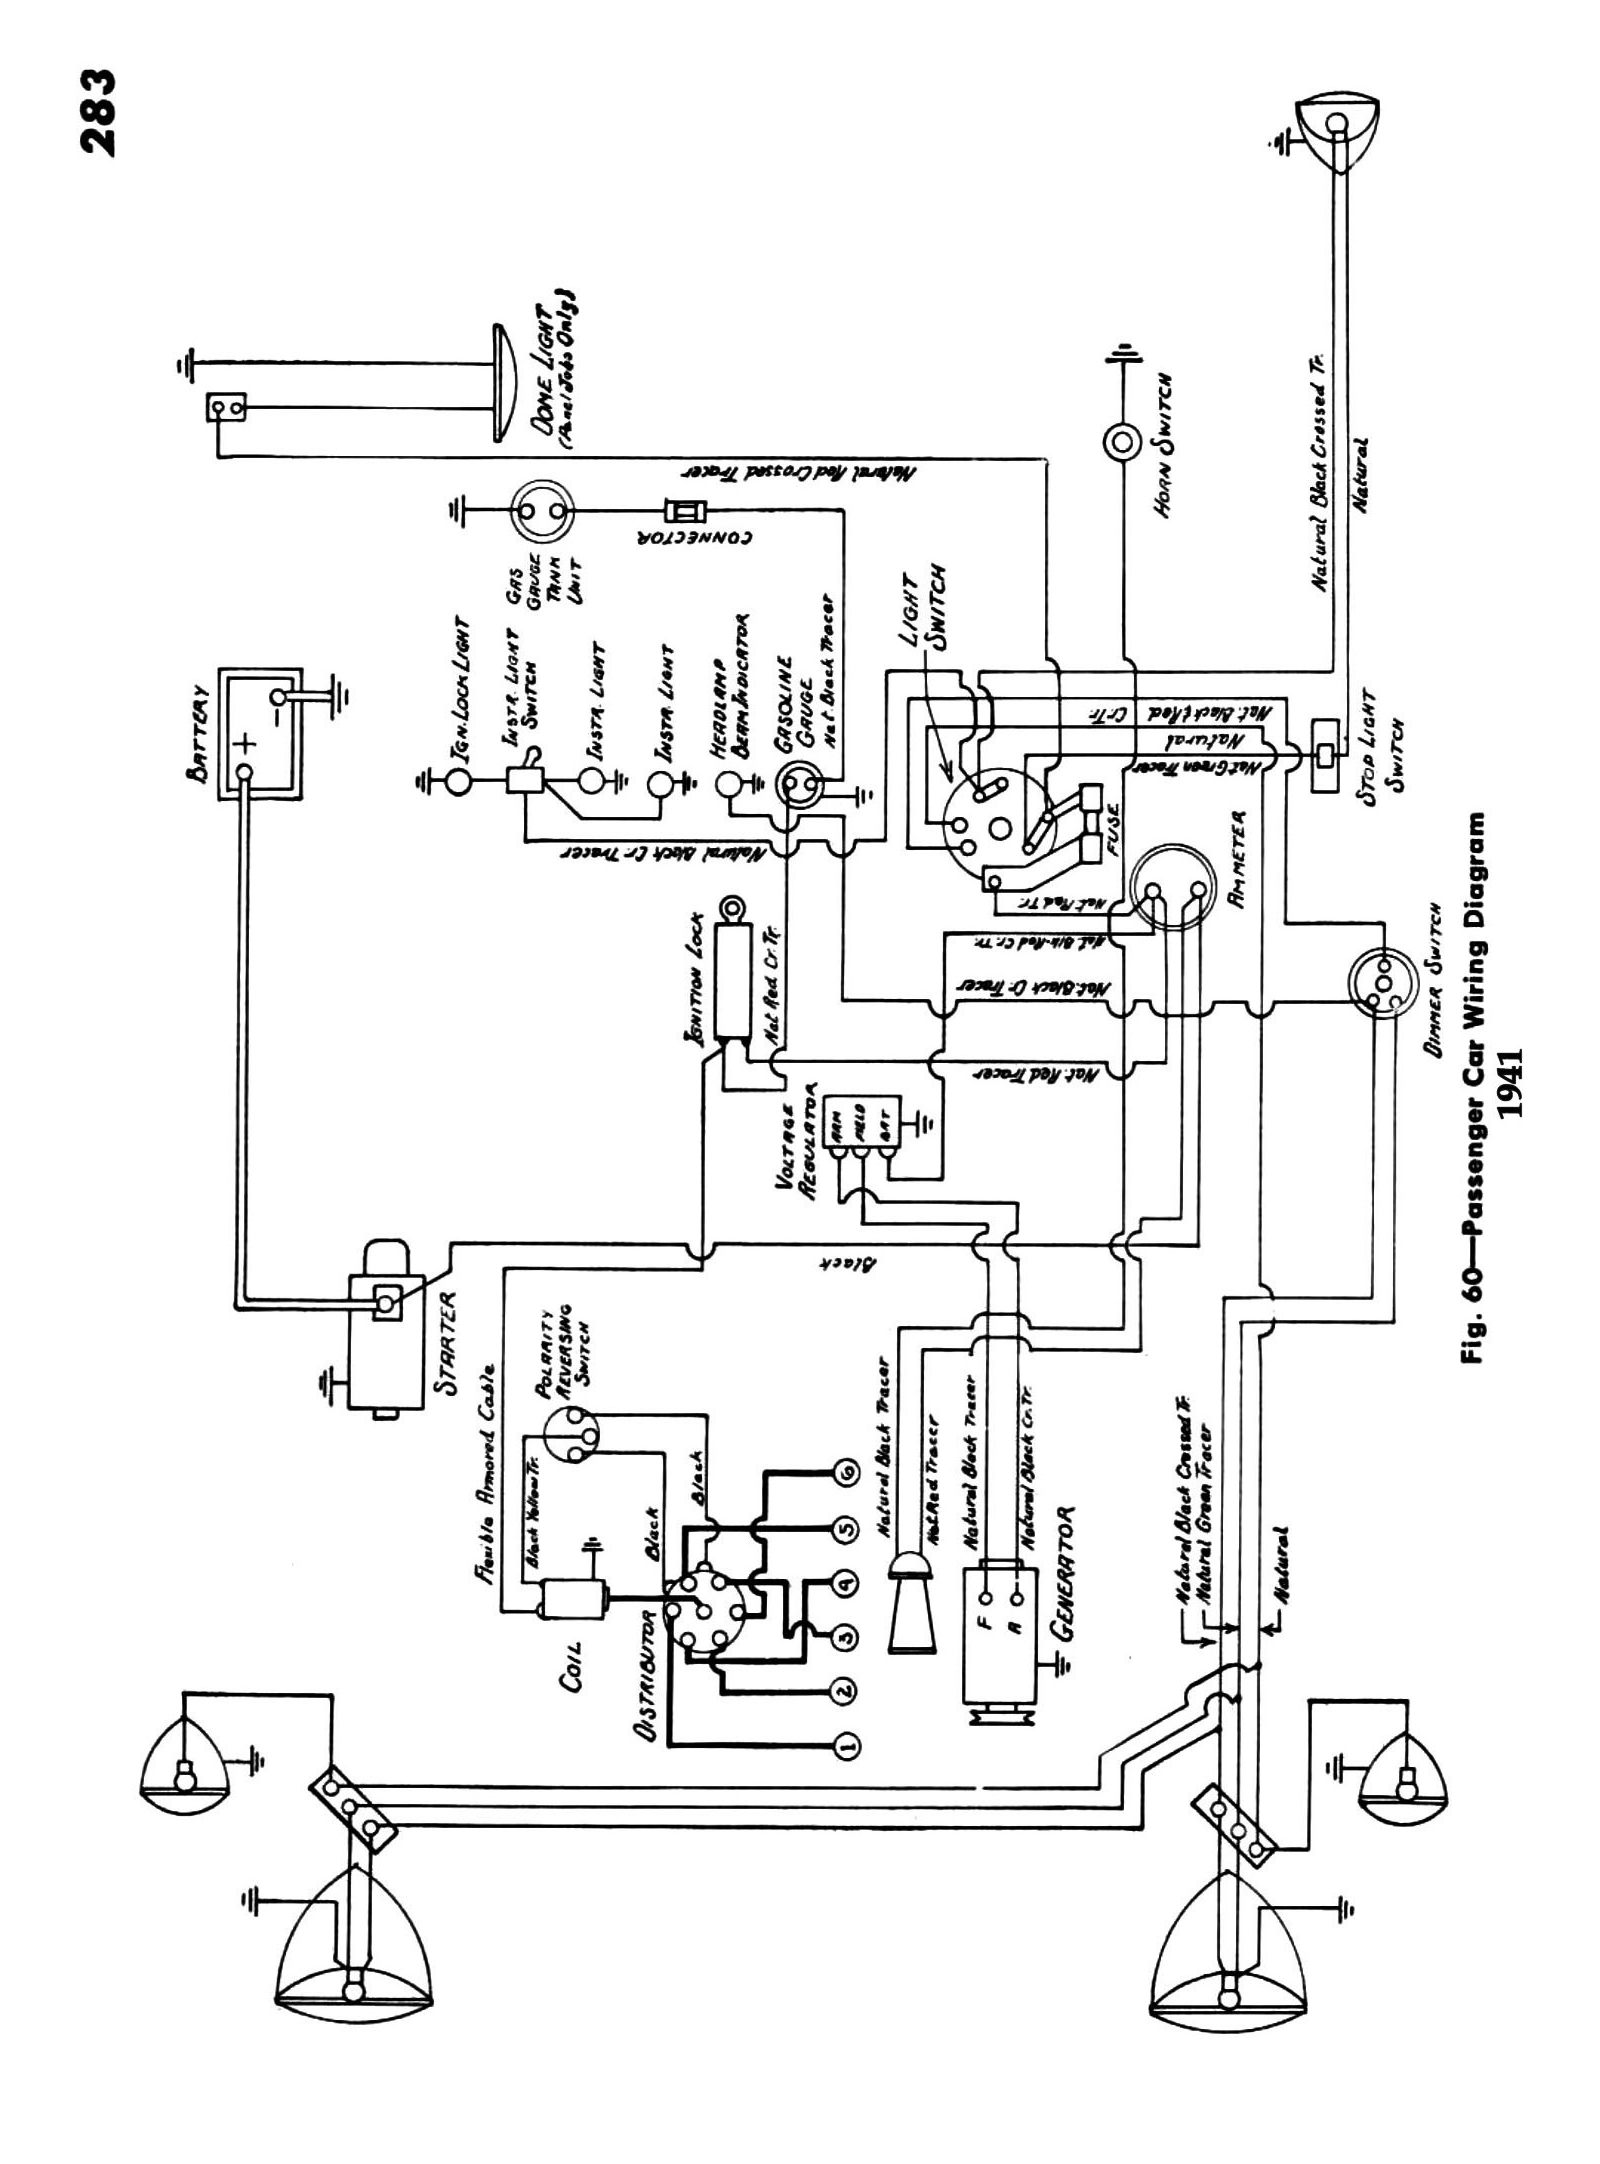 1986 Gmc Truck Wiring Diagrams Electric No Complete Diagram Images Gallery